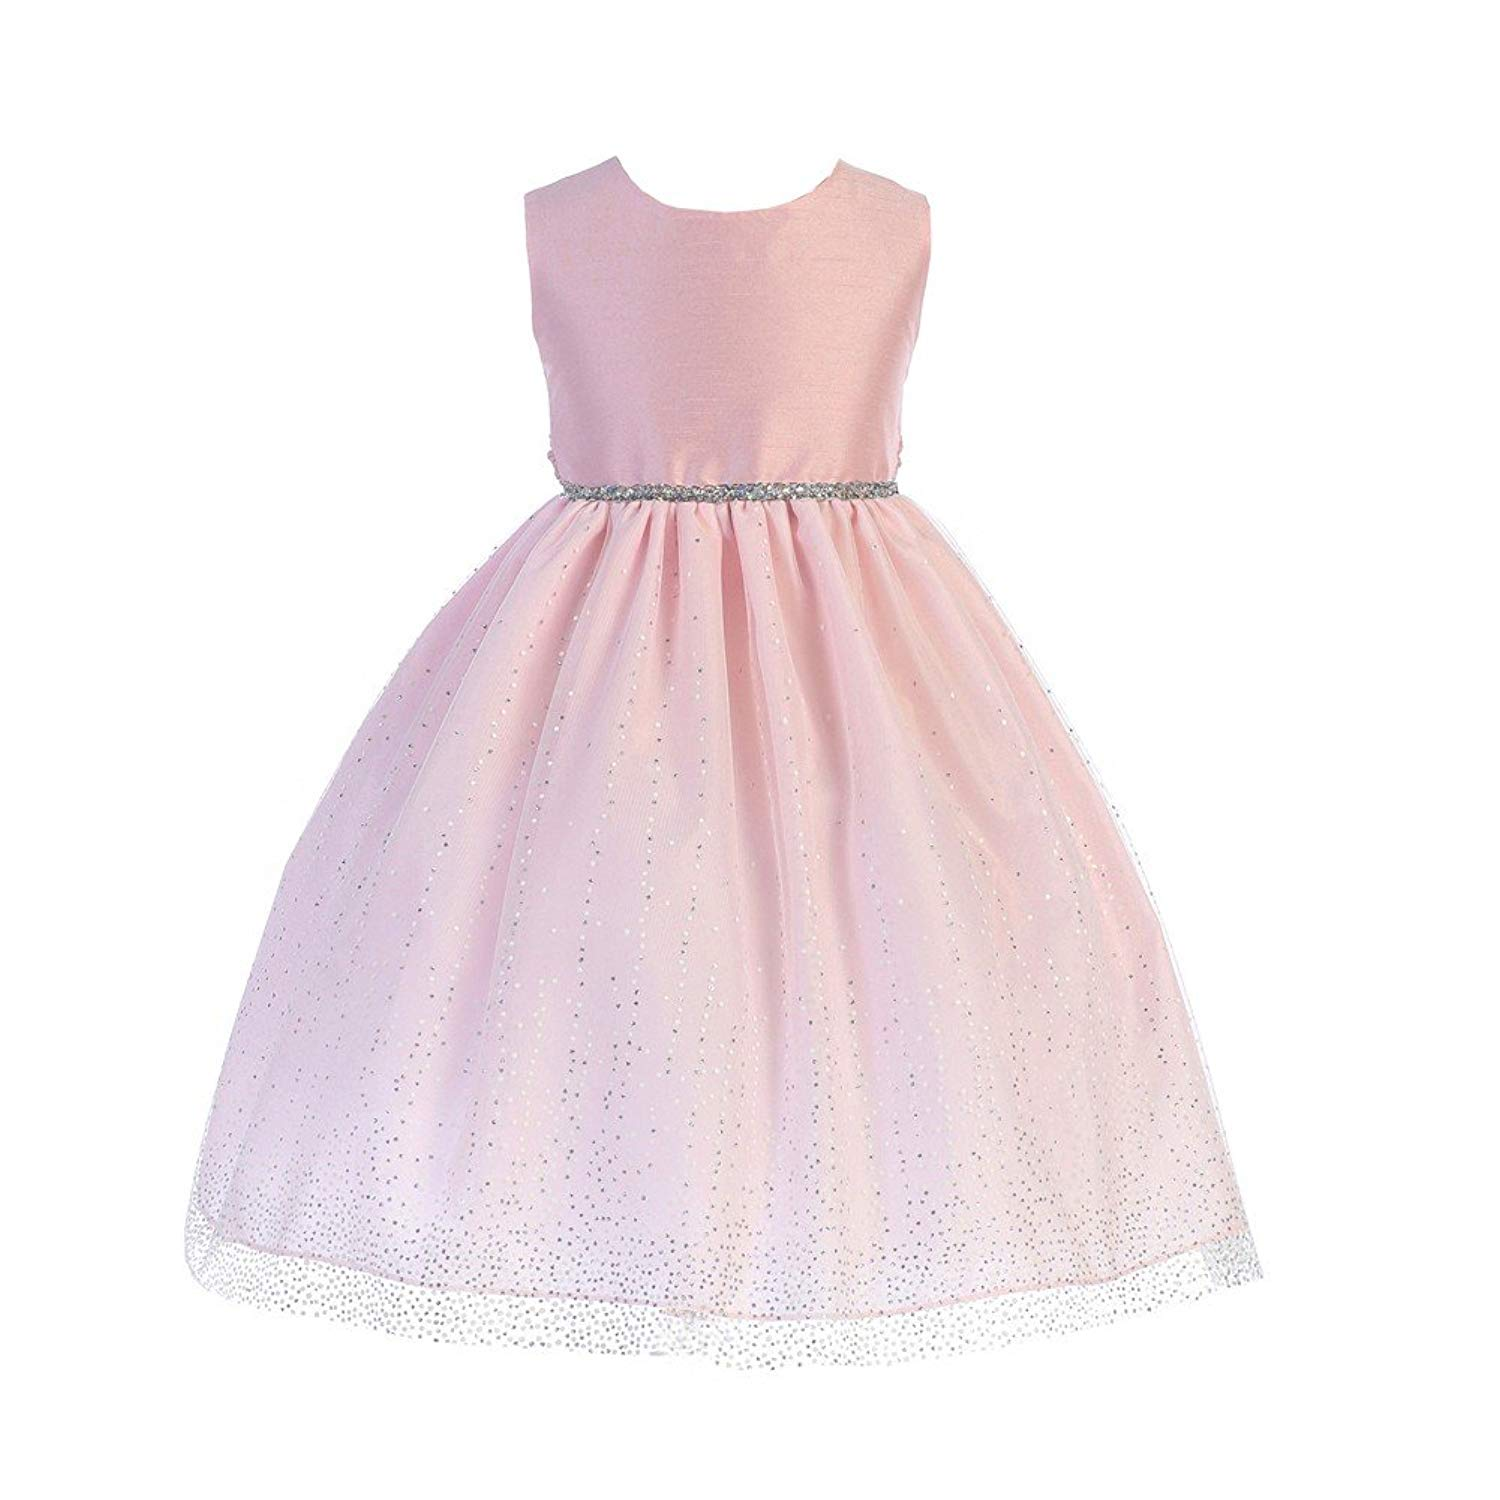 f860c595affd7e Get Quotations · Crayon Kids Little Girls Pink Glitter Trim Easter Flower  Girl Dress 2T-6